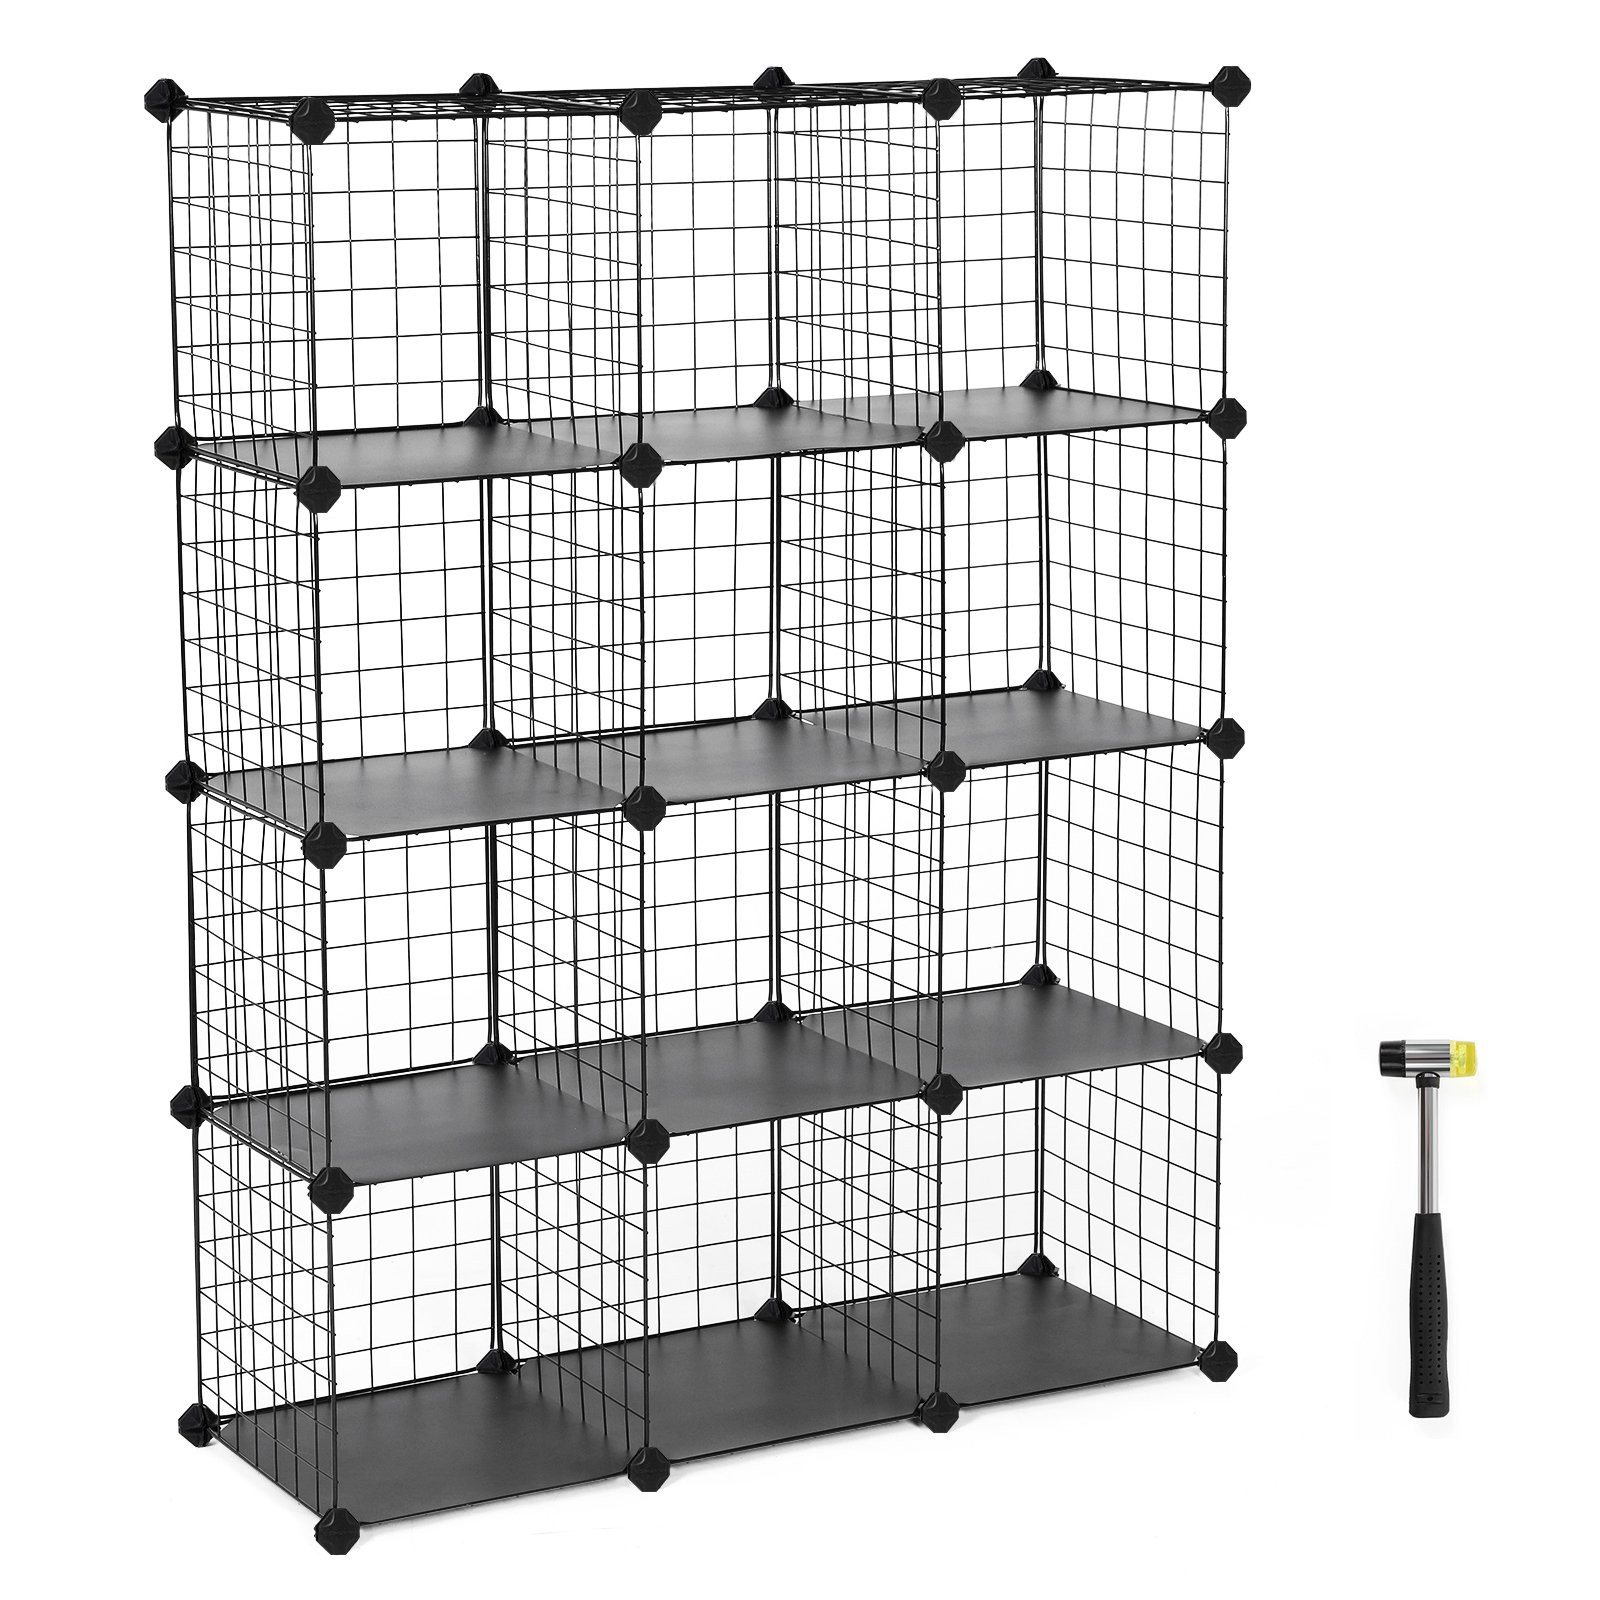 SONGMICS 12-Cube Metal Wire Storage Cube, Cube Storage Organizer, Modular Bookcase, DIY Closet Cabinet Shelf with Rubber Mallet 36.6''L x 12.2''W x 48.4''H, Black, ULPI34H